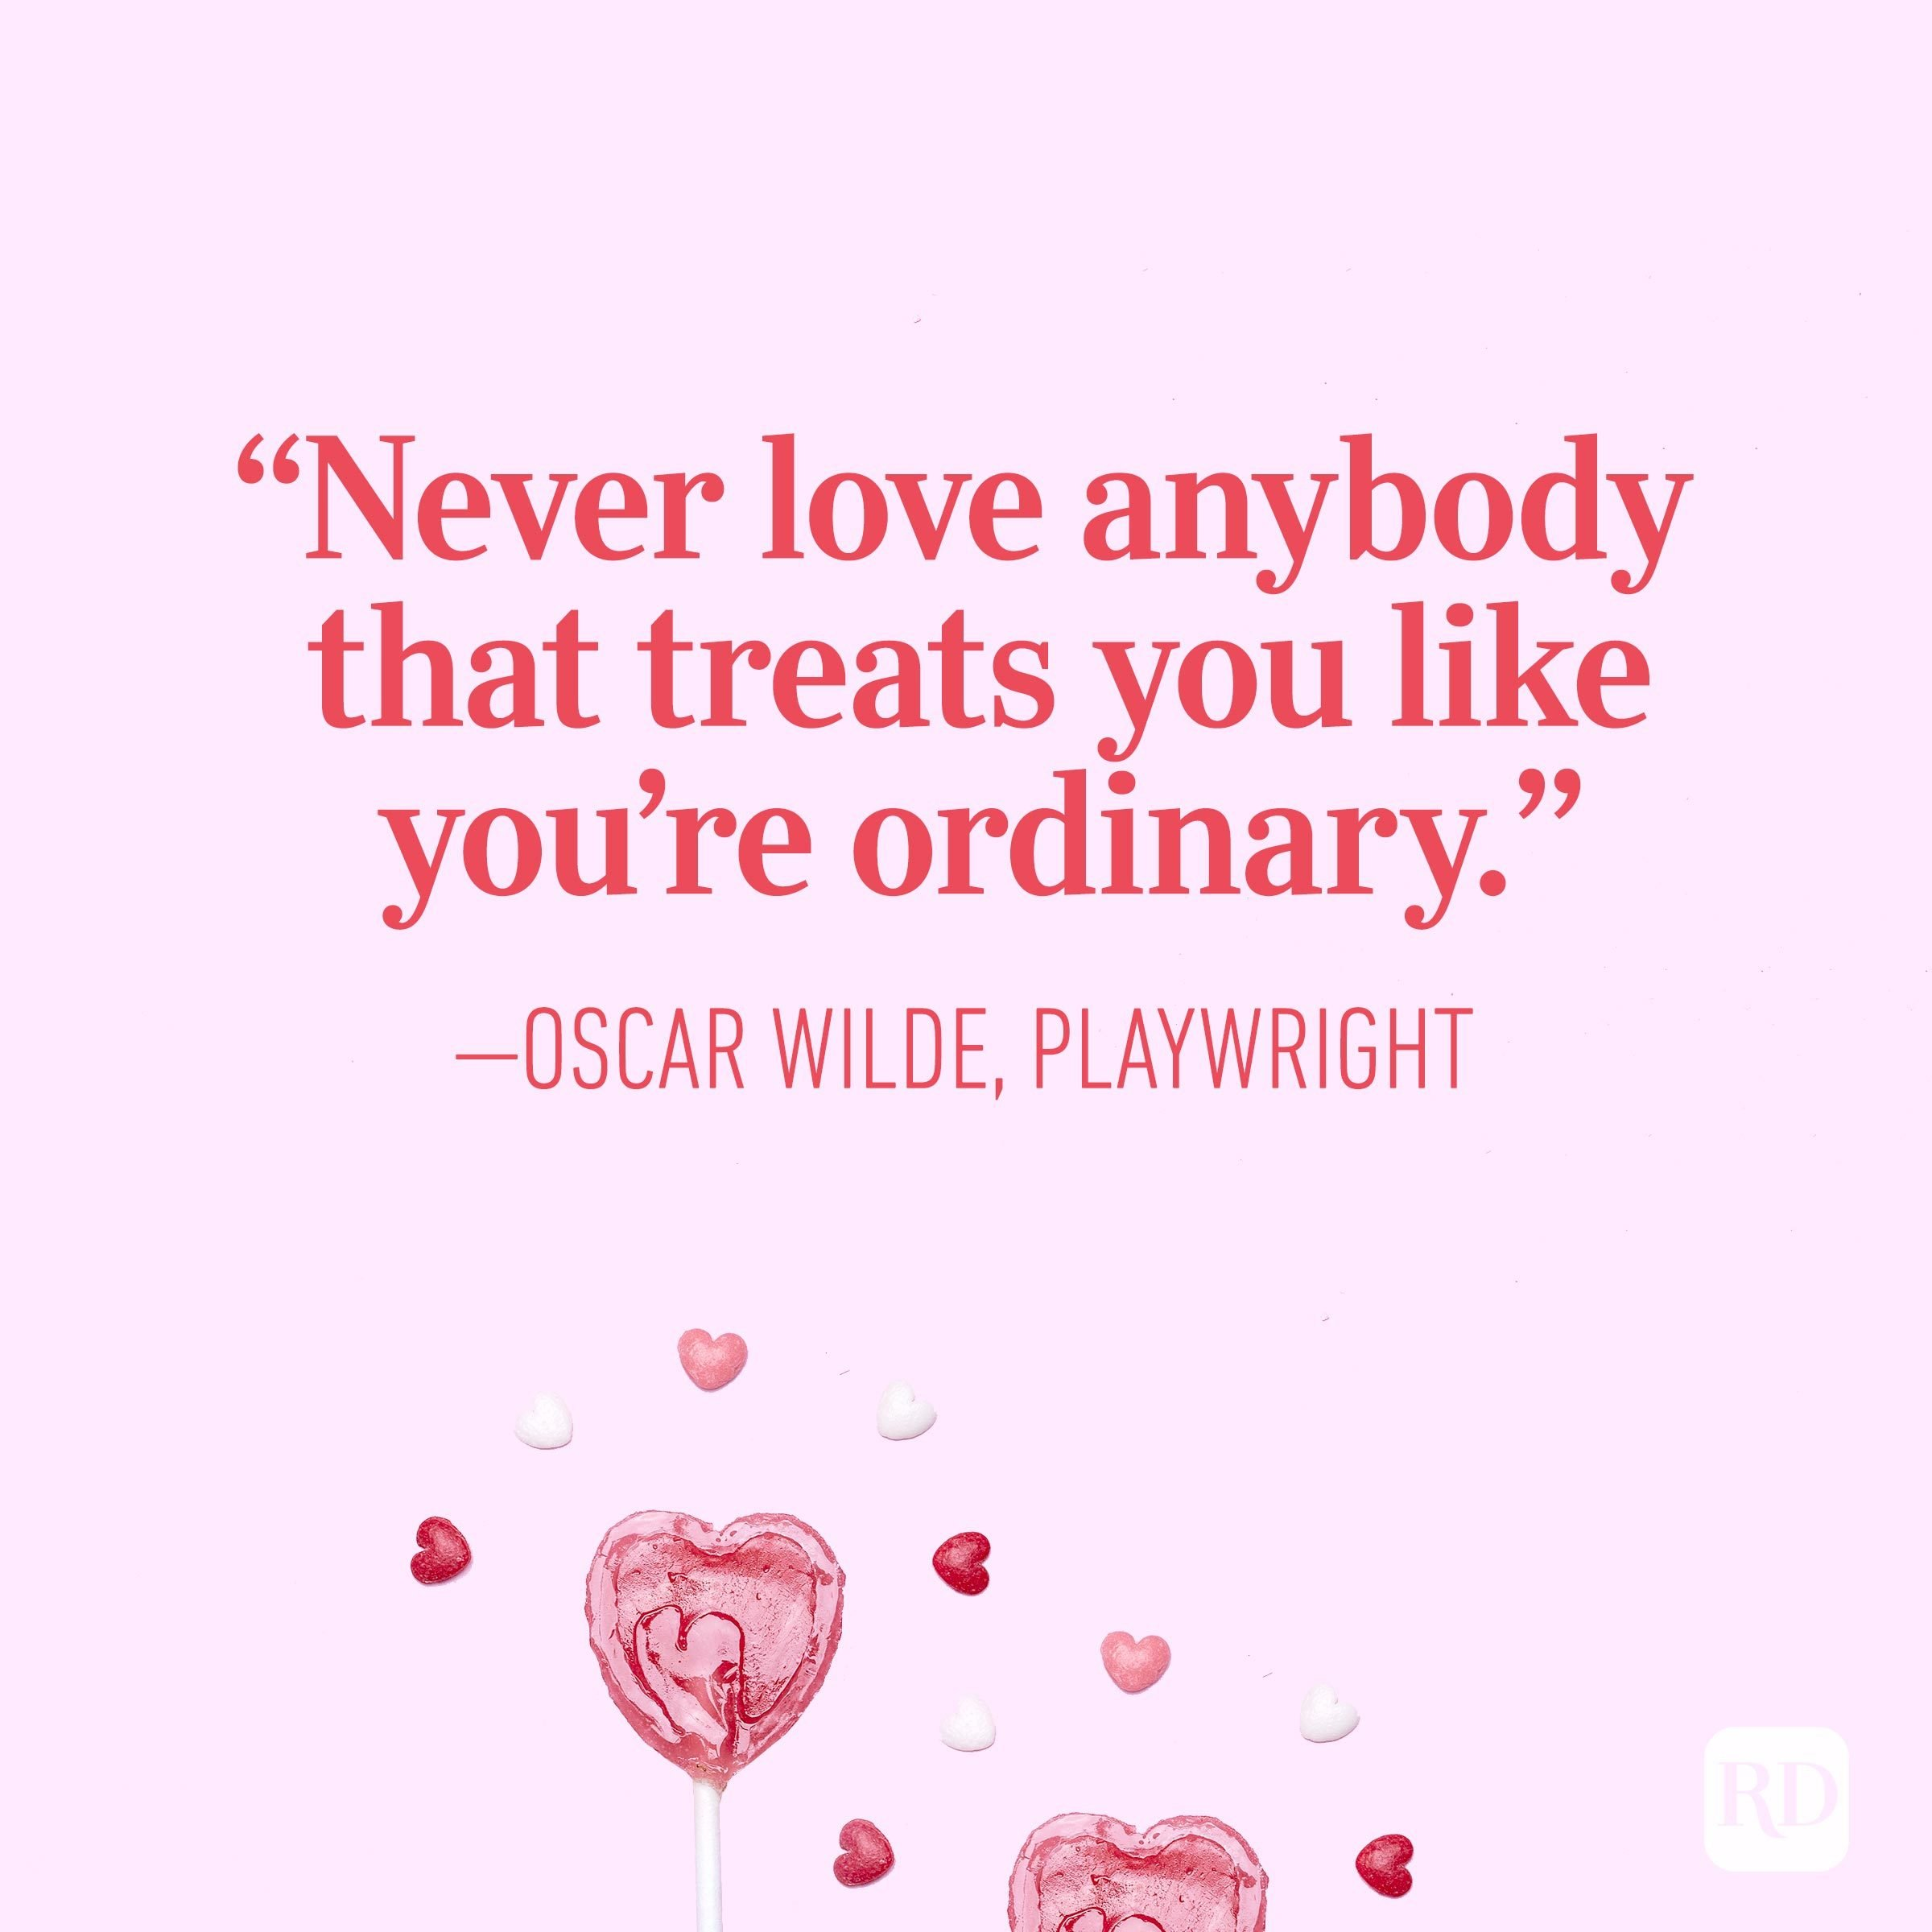 """Never love anybody that treats you like you're ordinary.""— Oscar Wilde, playwright"